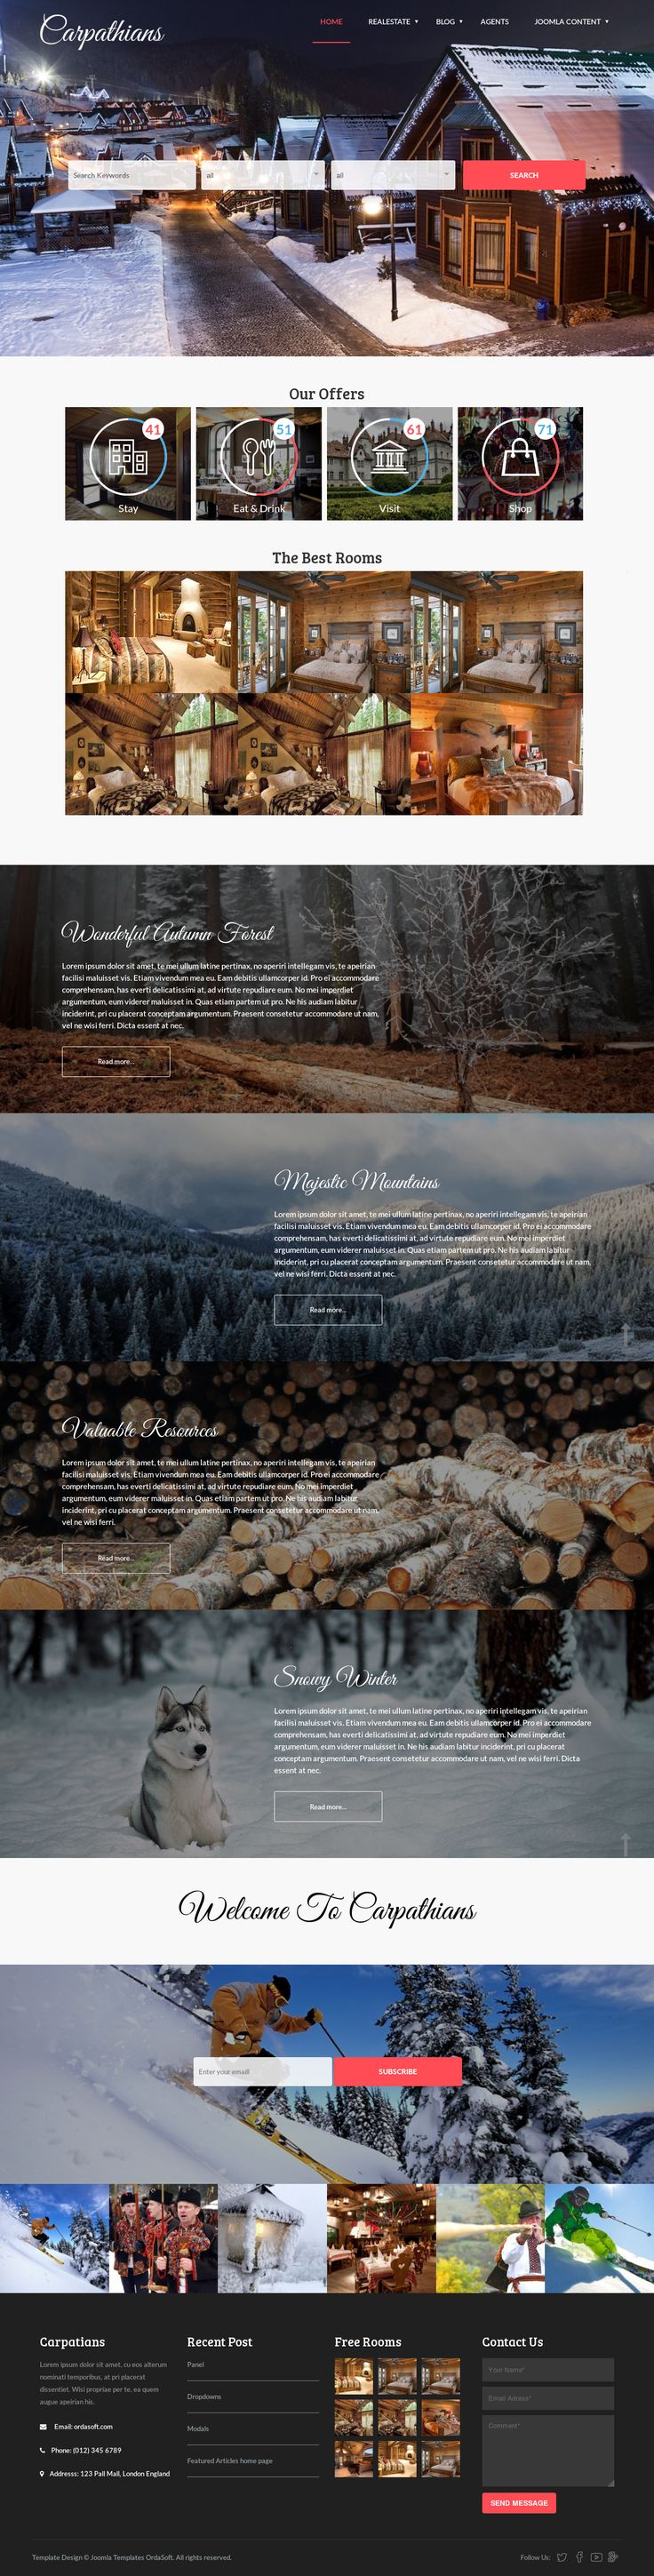 27 best Real Estate Templates by Ordasoft images on Pinterest | Real ...